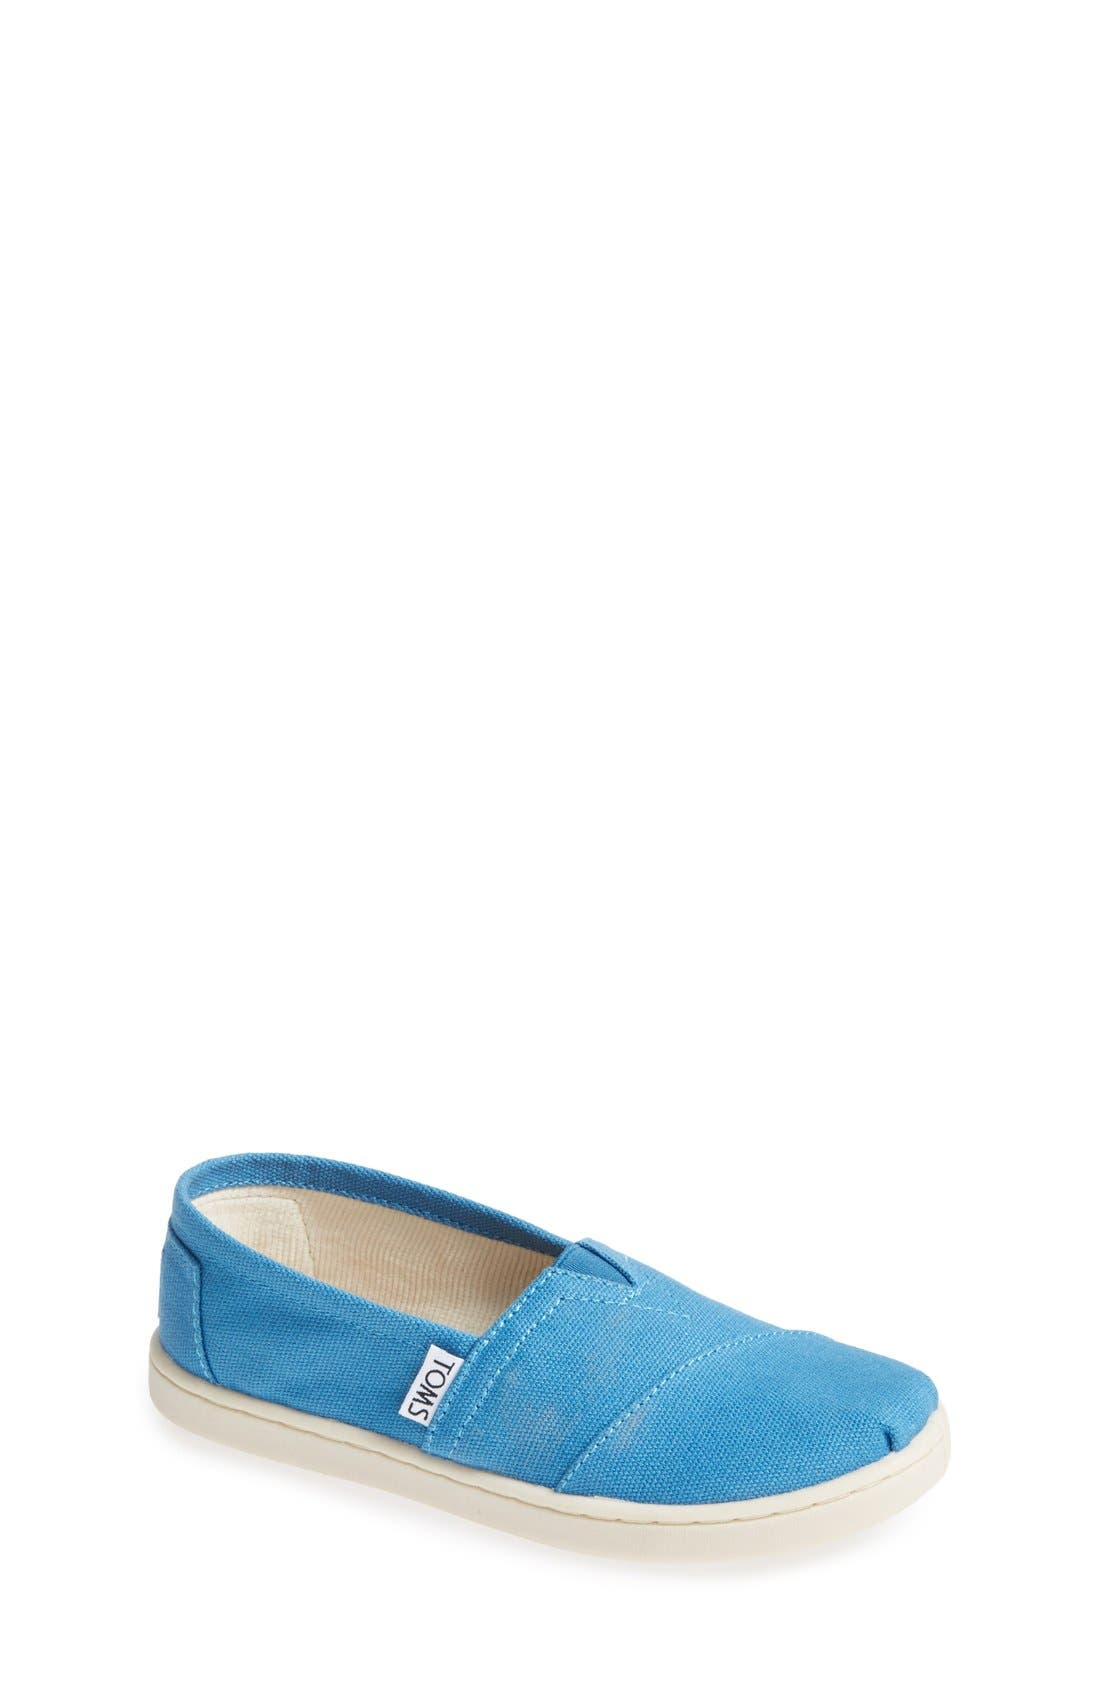 'Classic - Youth' Canvas Slip-On,                         Main,                         color, 420